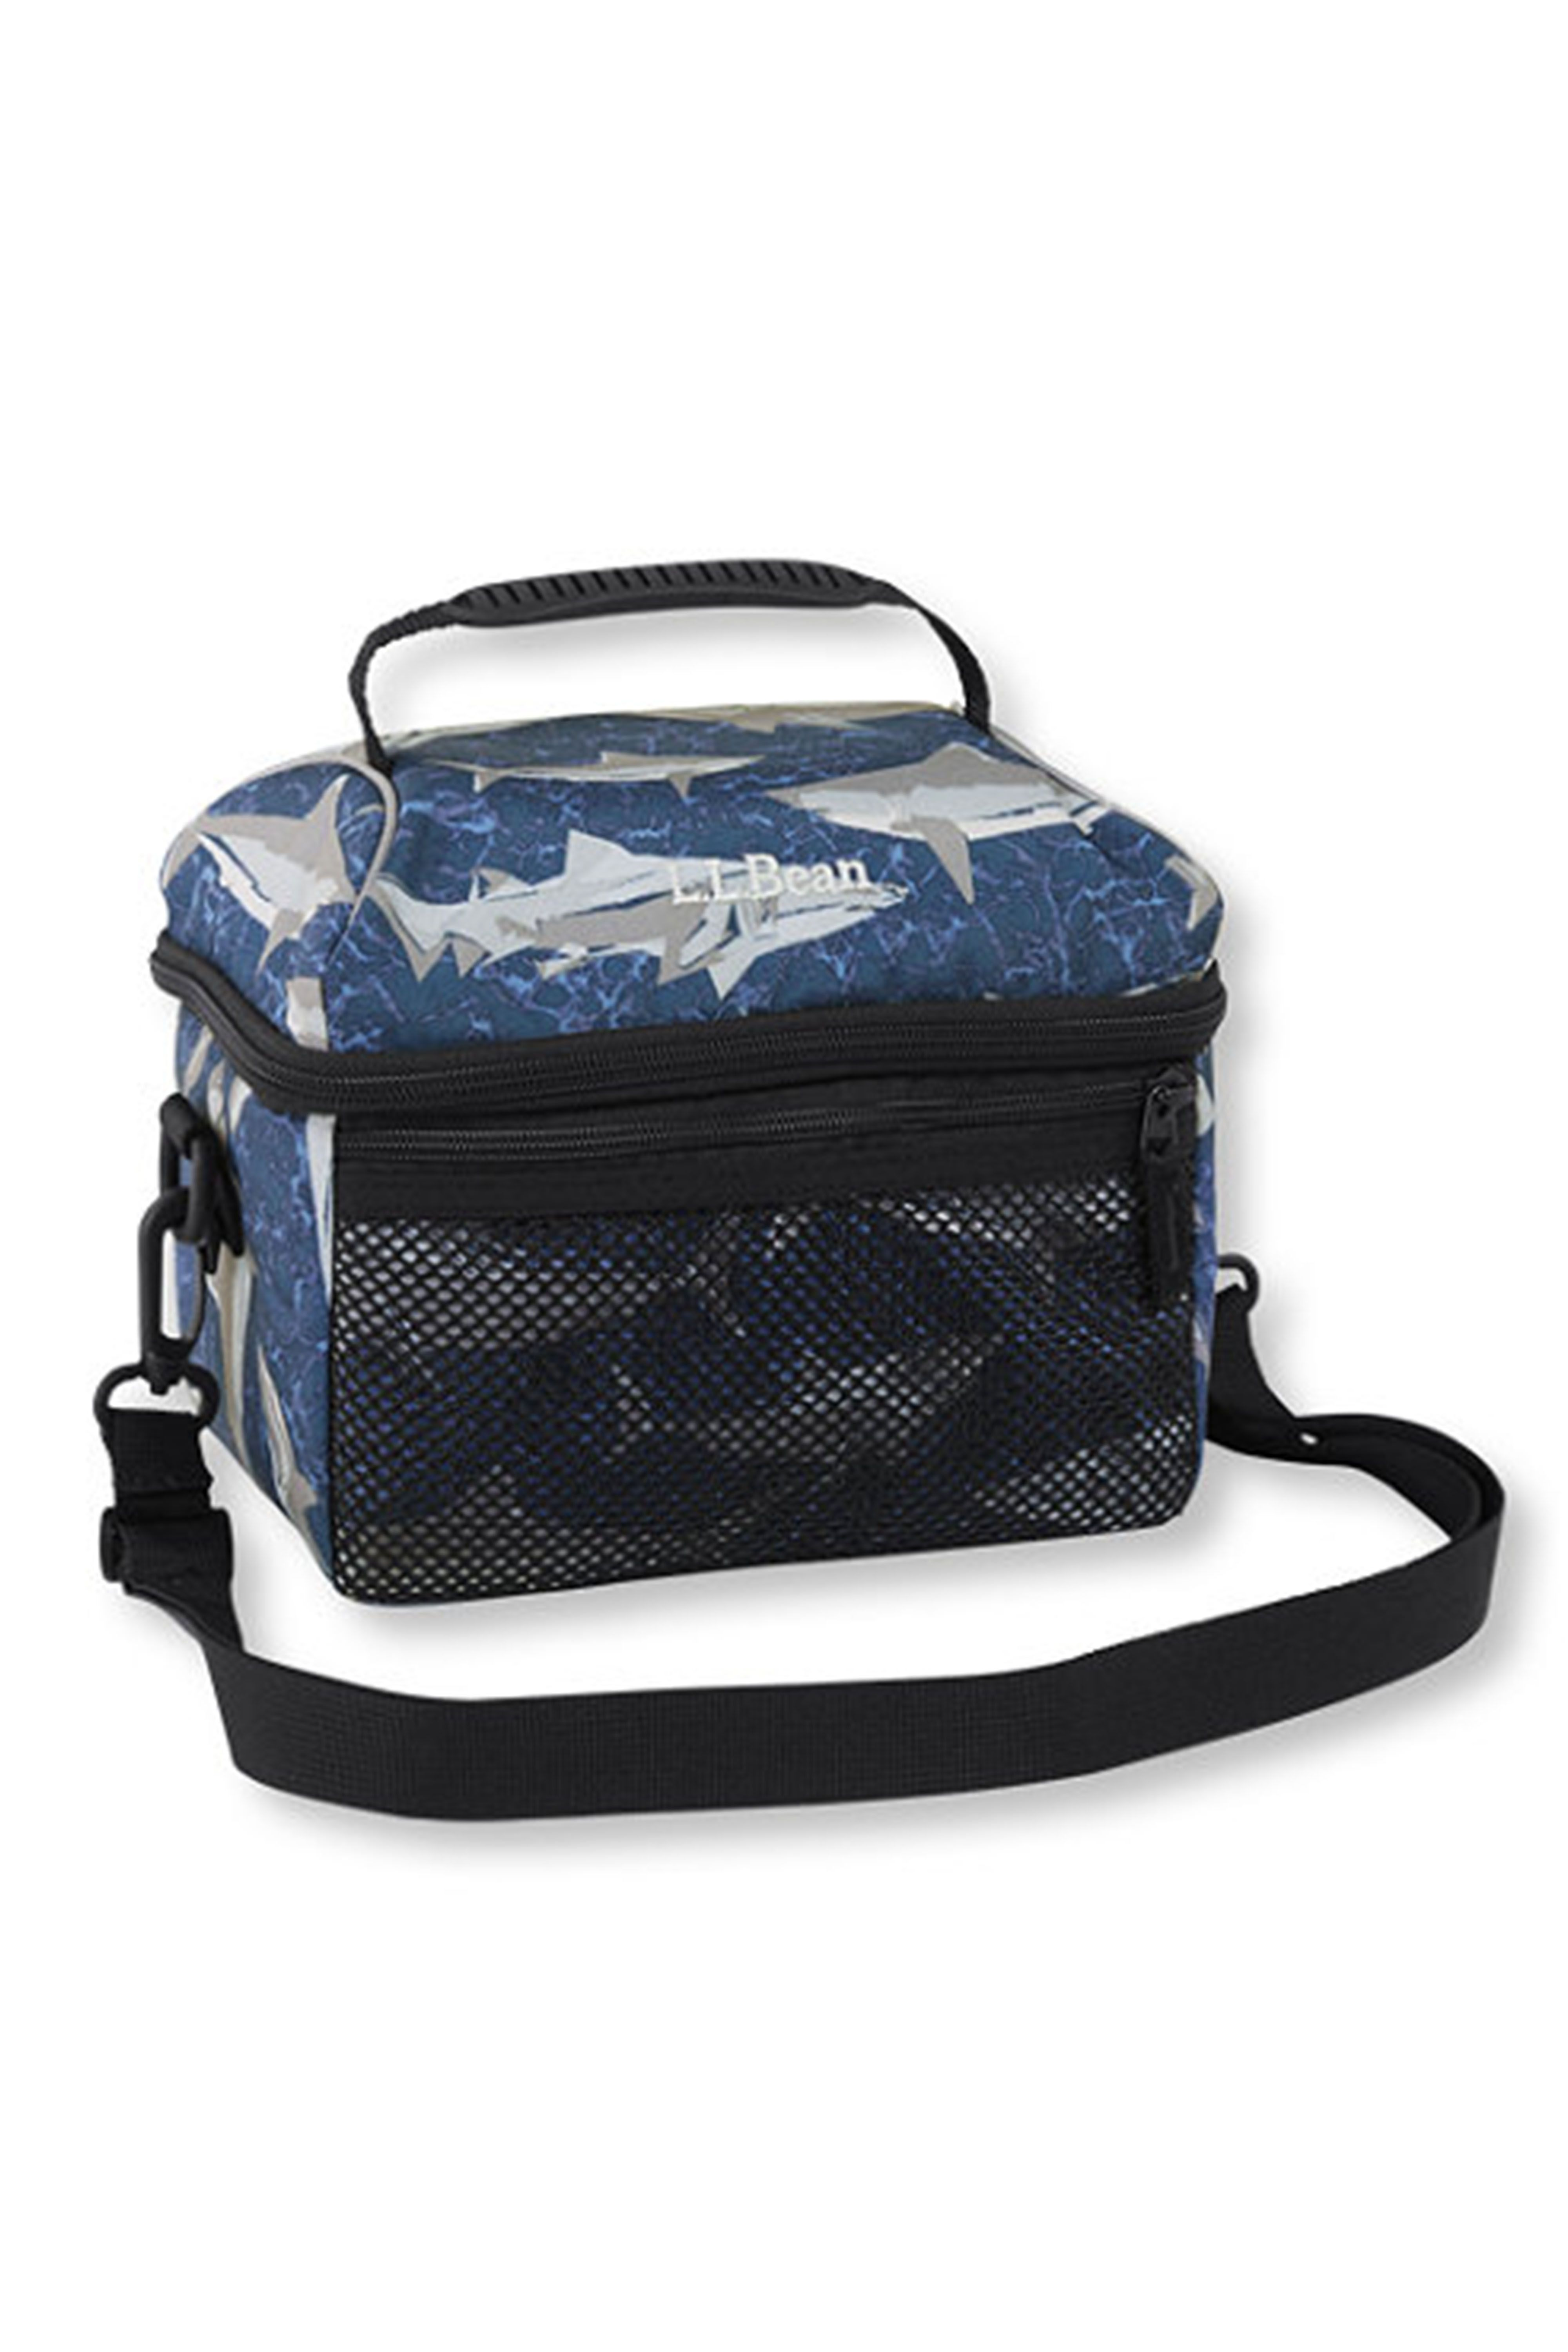 4d4b582dbb 16 Best Kids Lunch Boxes   Bags 2019 - Top Rated School Lunch Box Reviews